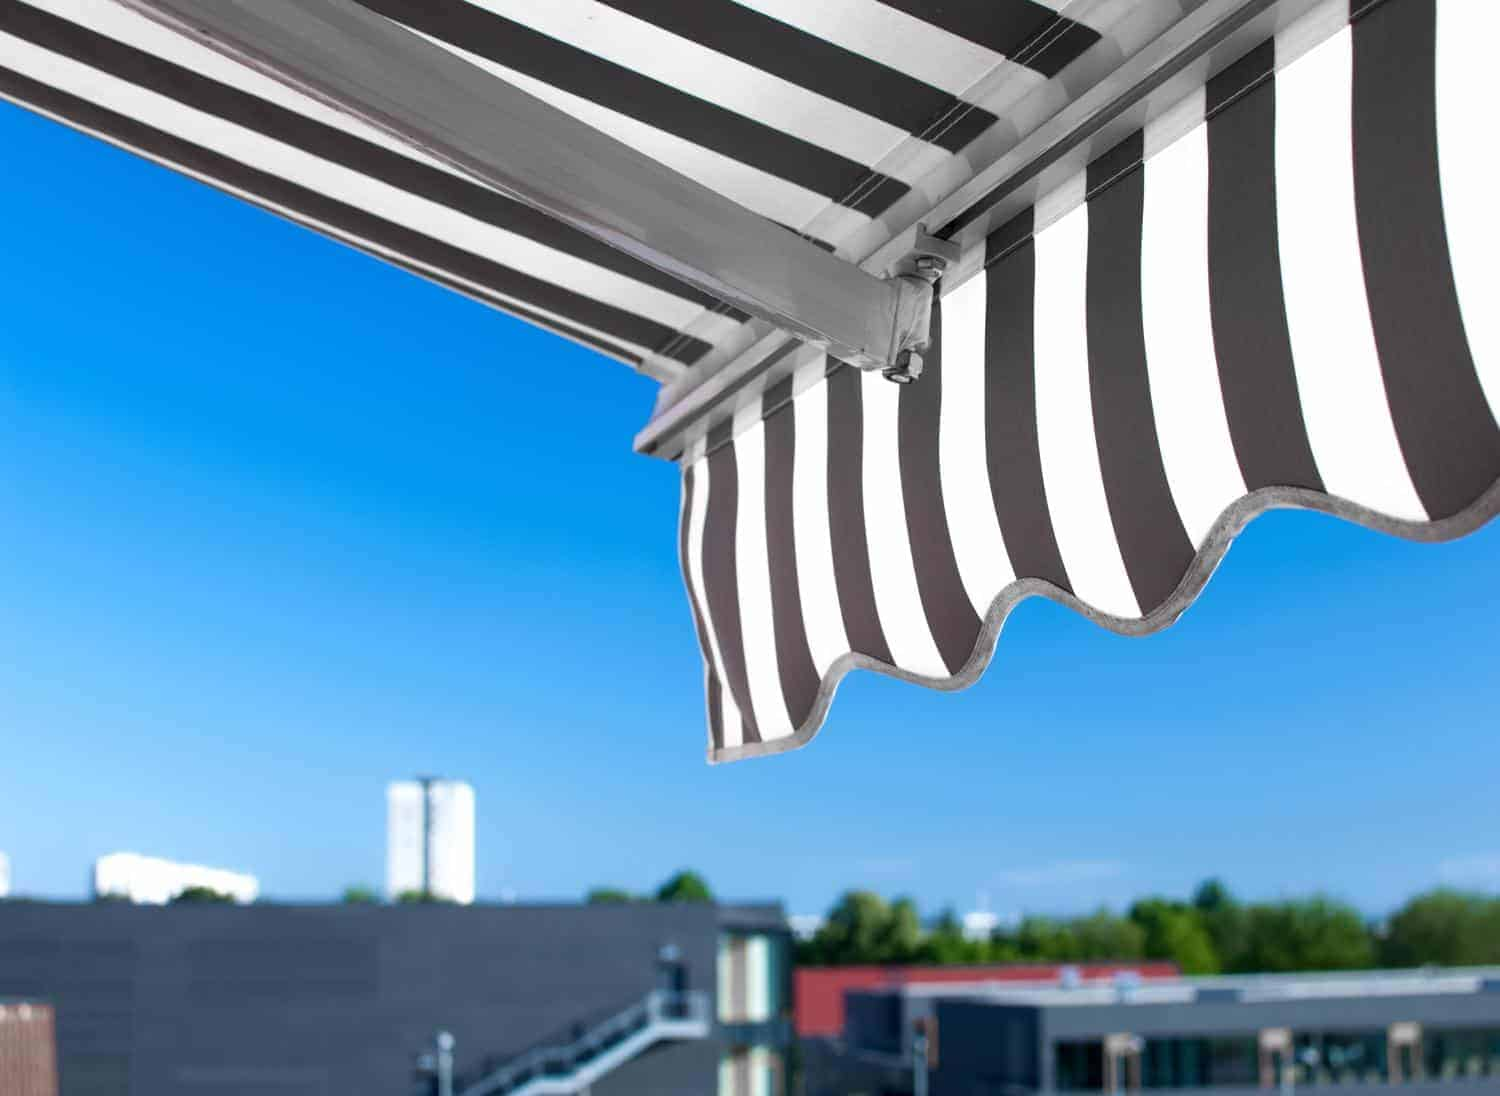 stock-photo-awning-against-blue-sunny-sky-654861580